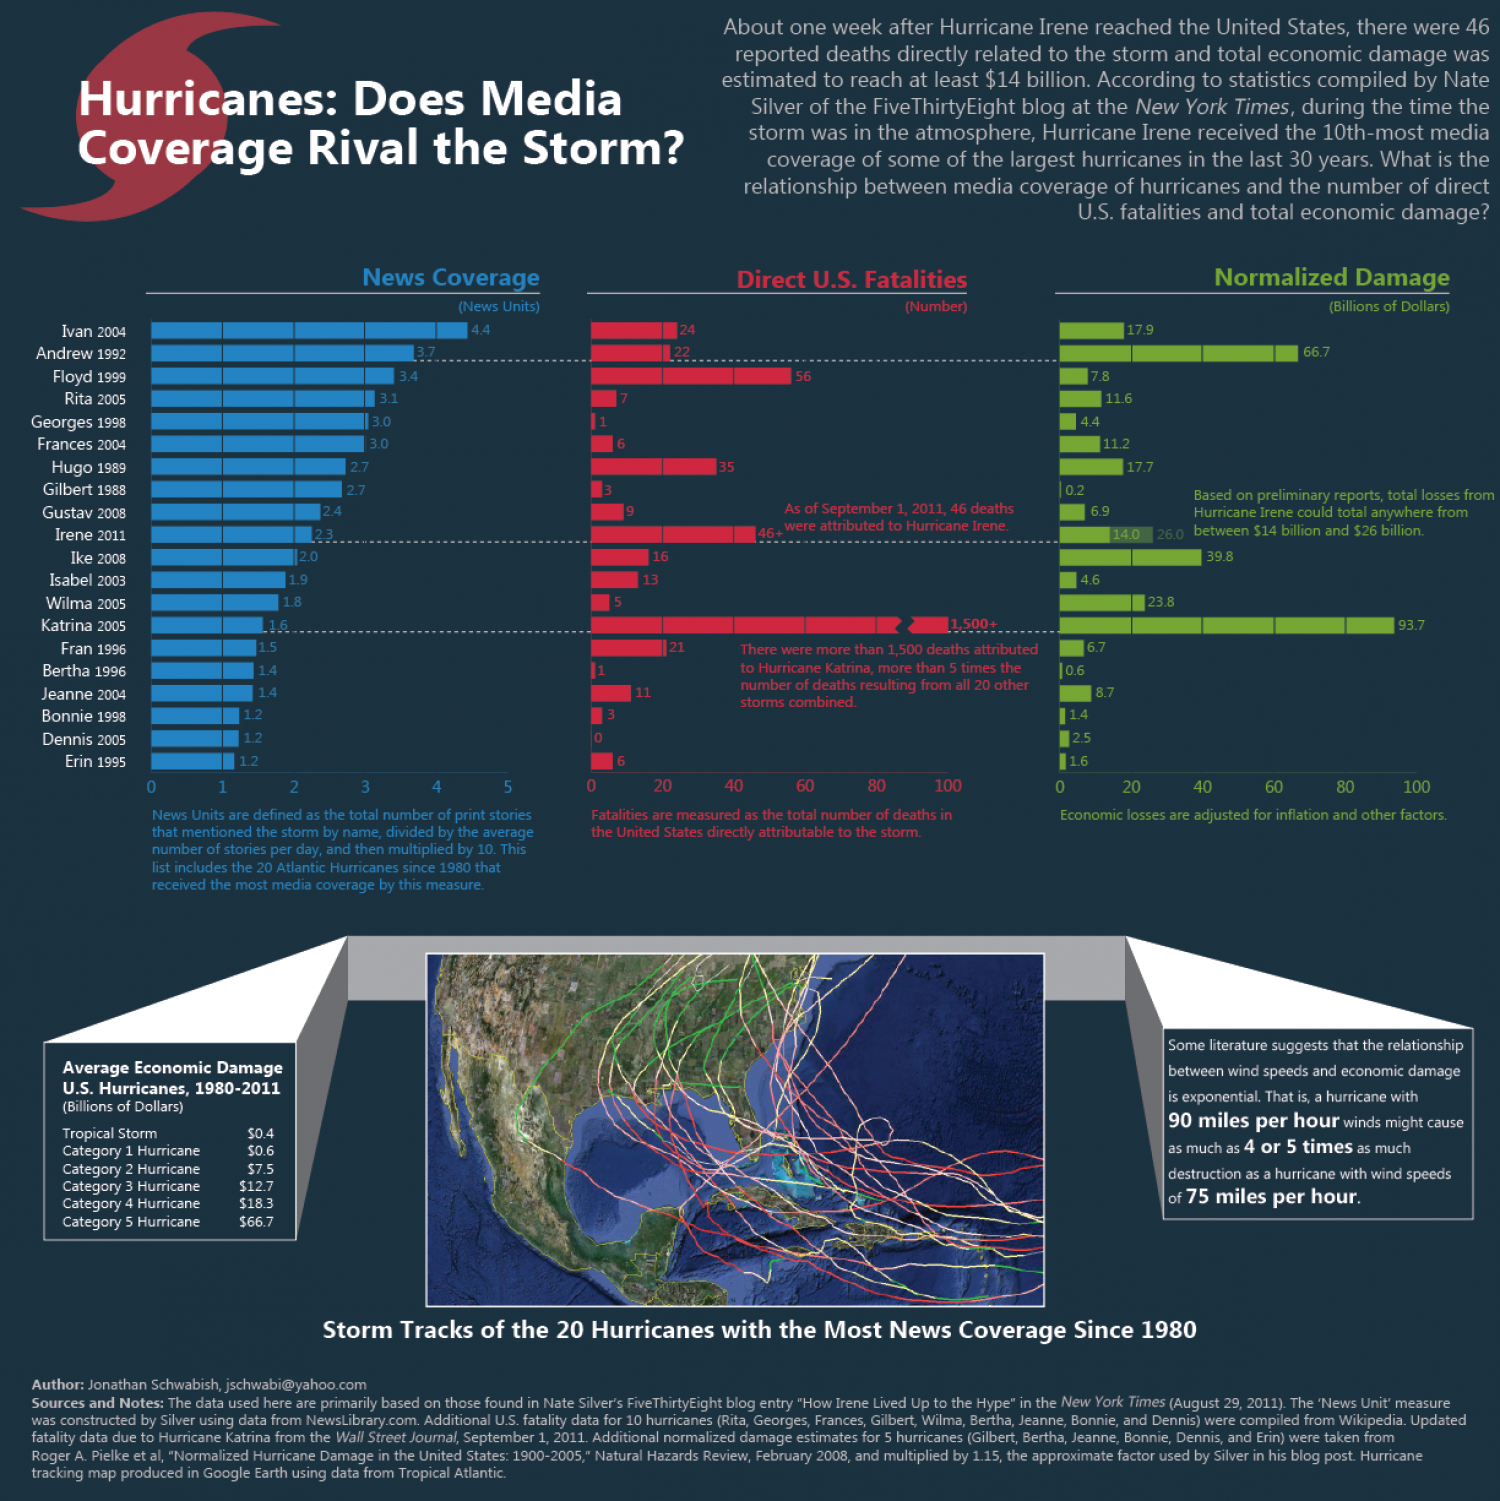 Hurricanes: Does Media Coverage Rival the Storm? Infographic